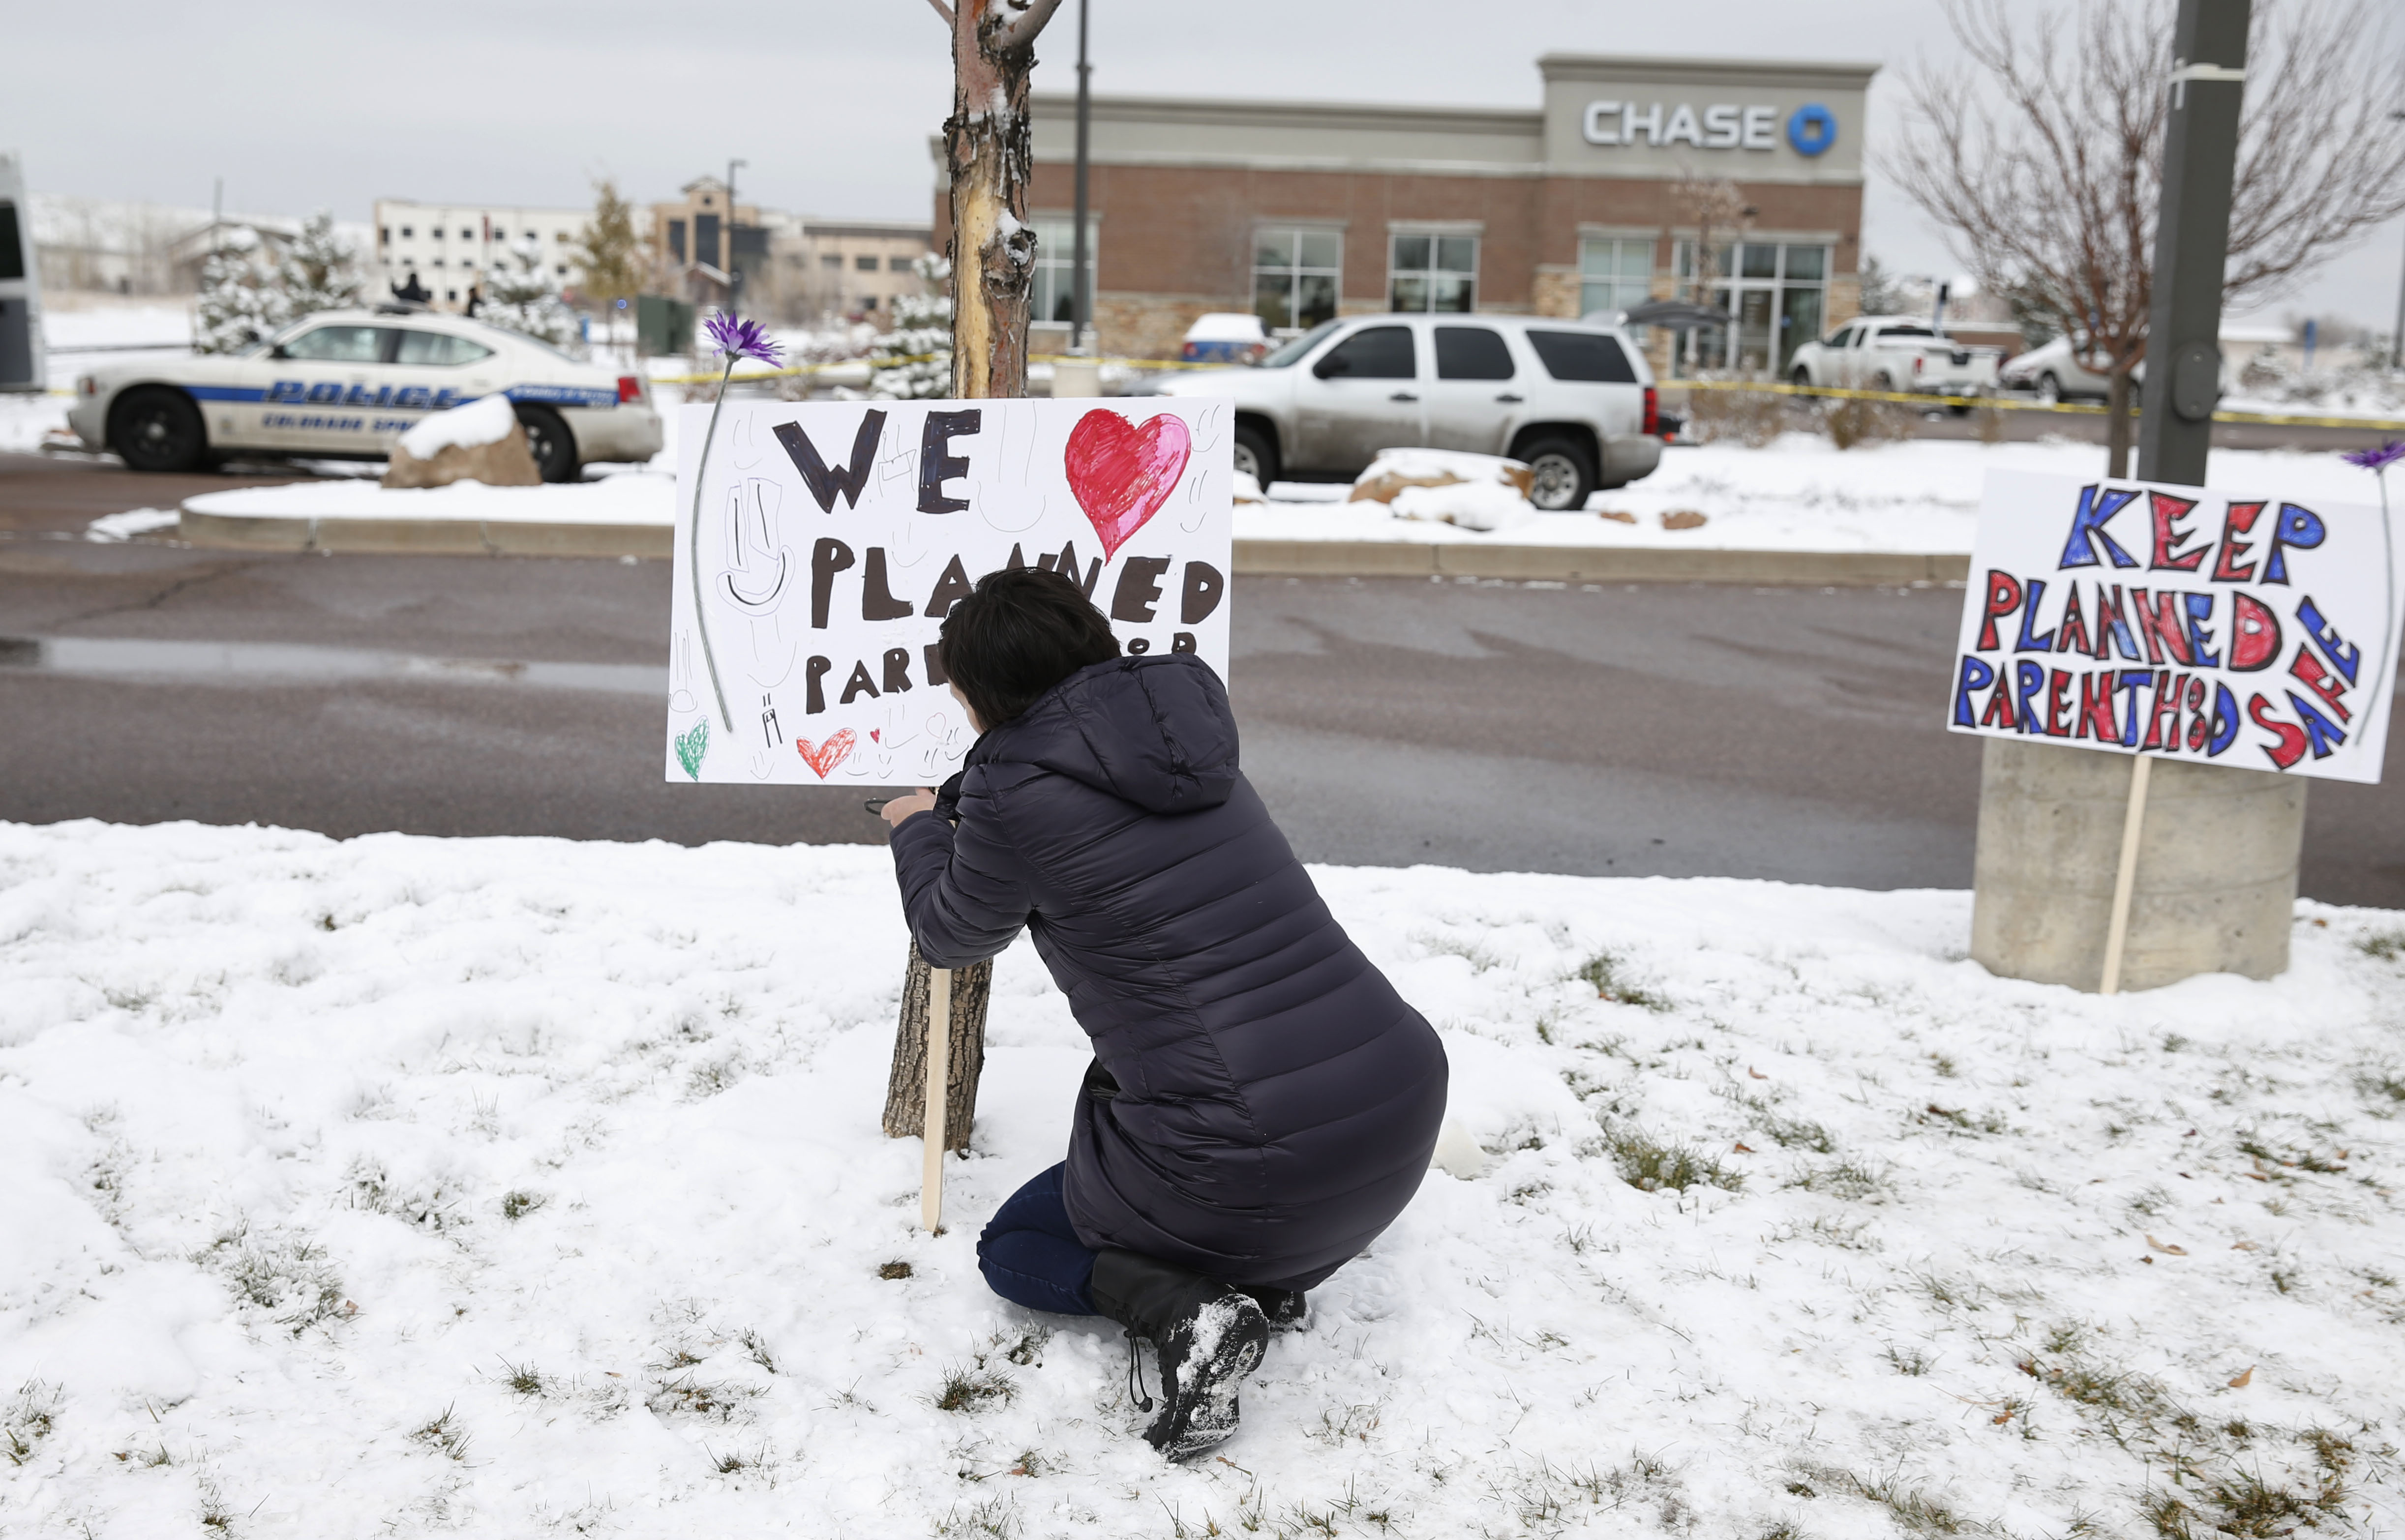 Photo: Sign supports Planned Parenthood (AP Photo)